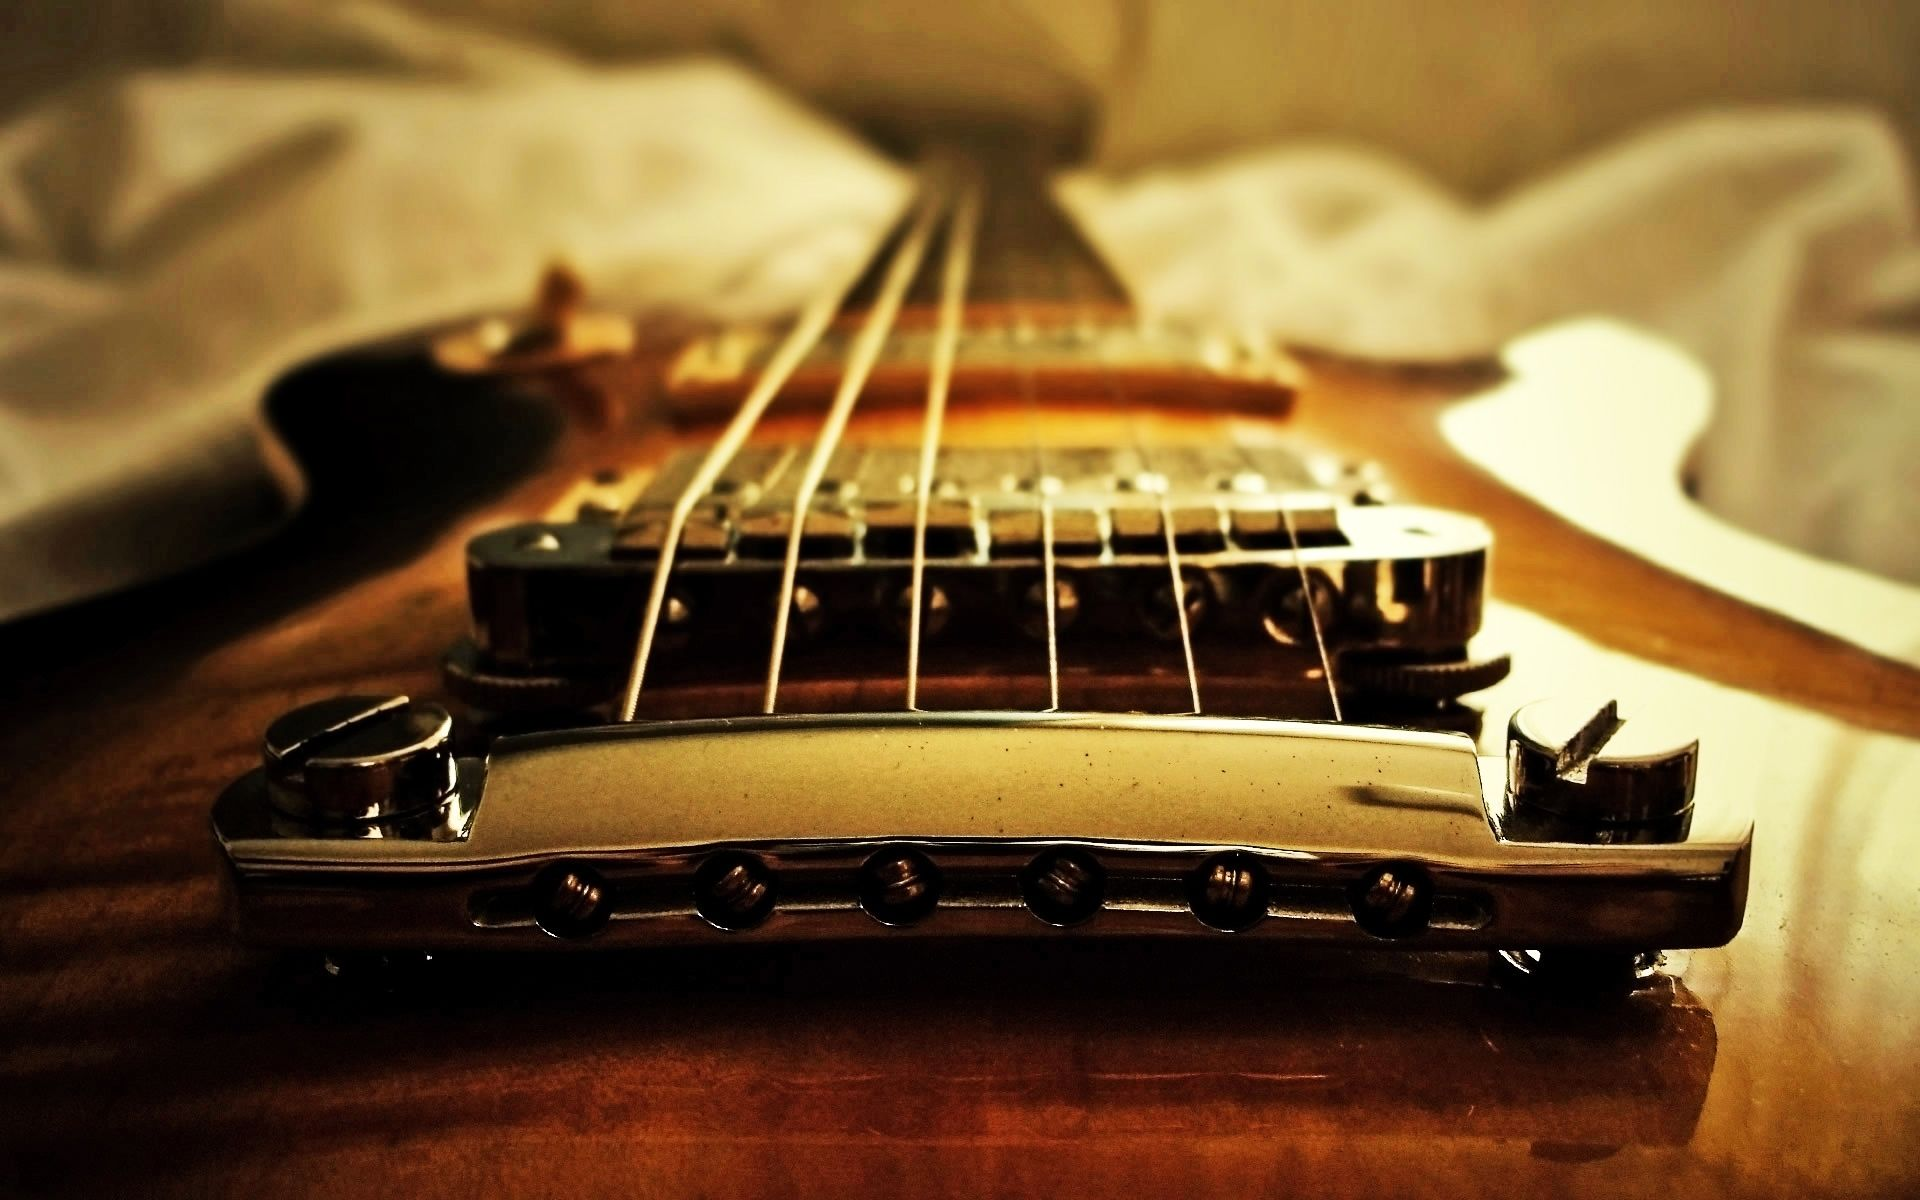 Country Music Iphone Wallpaper - Gibson Les Paul Hd , HD Wallpaper & Backgrounds